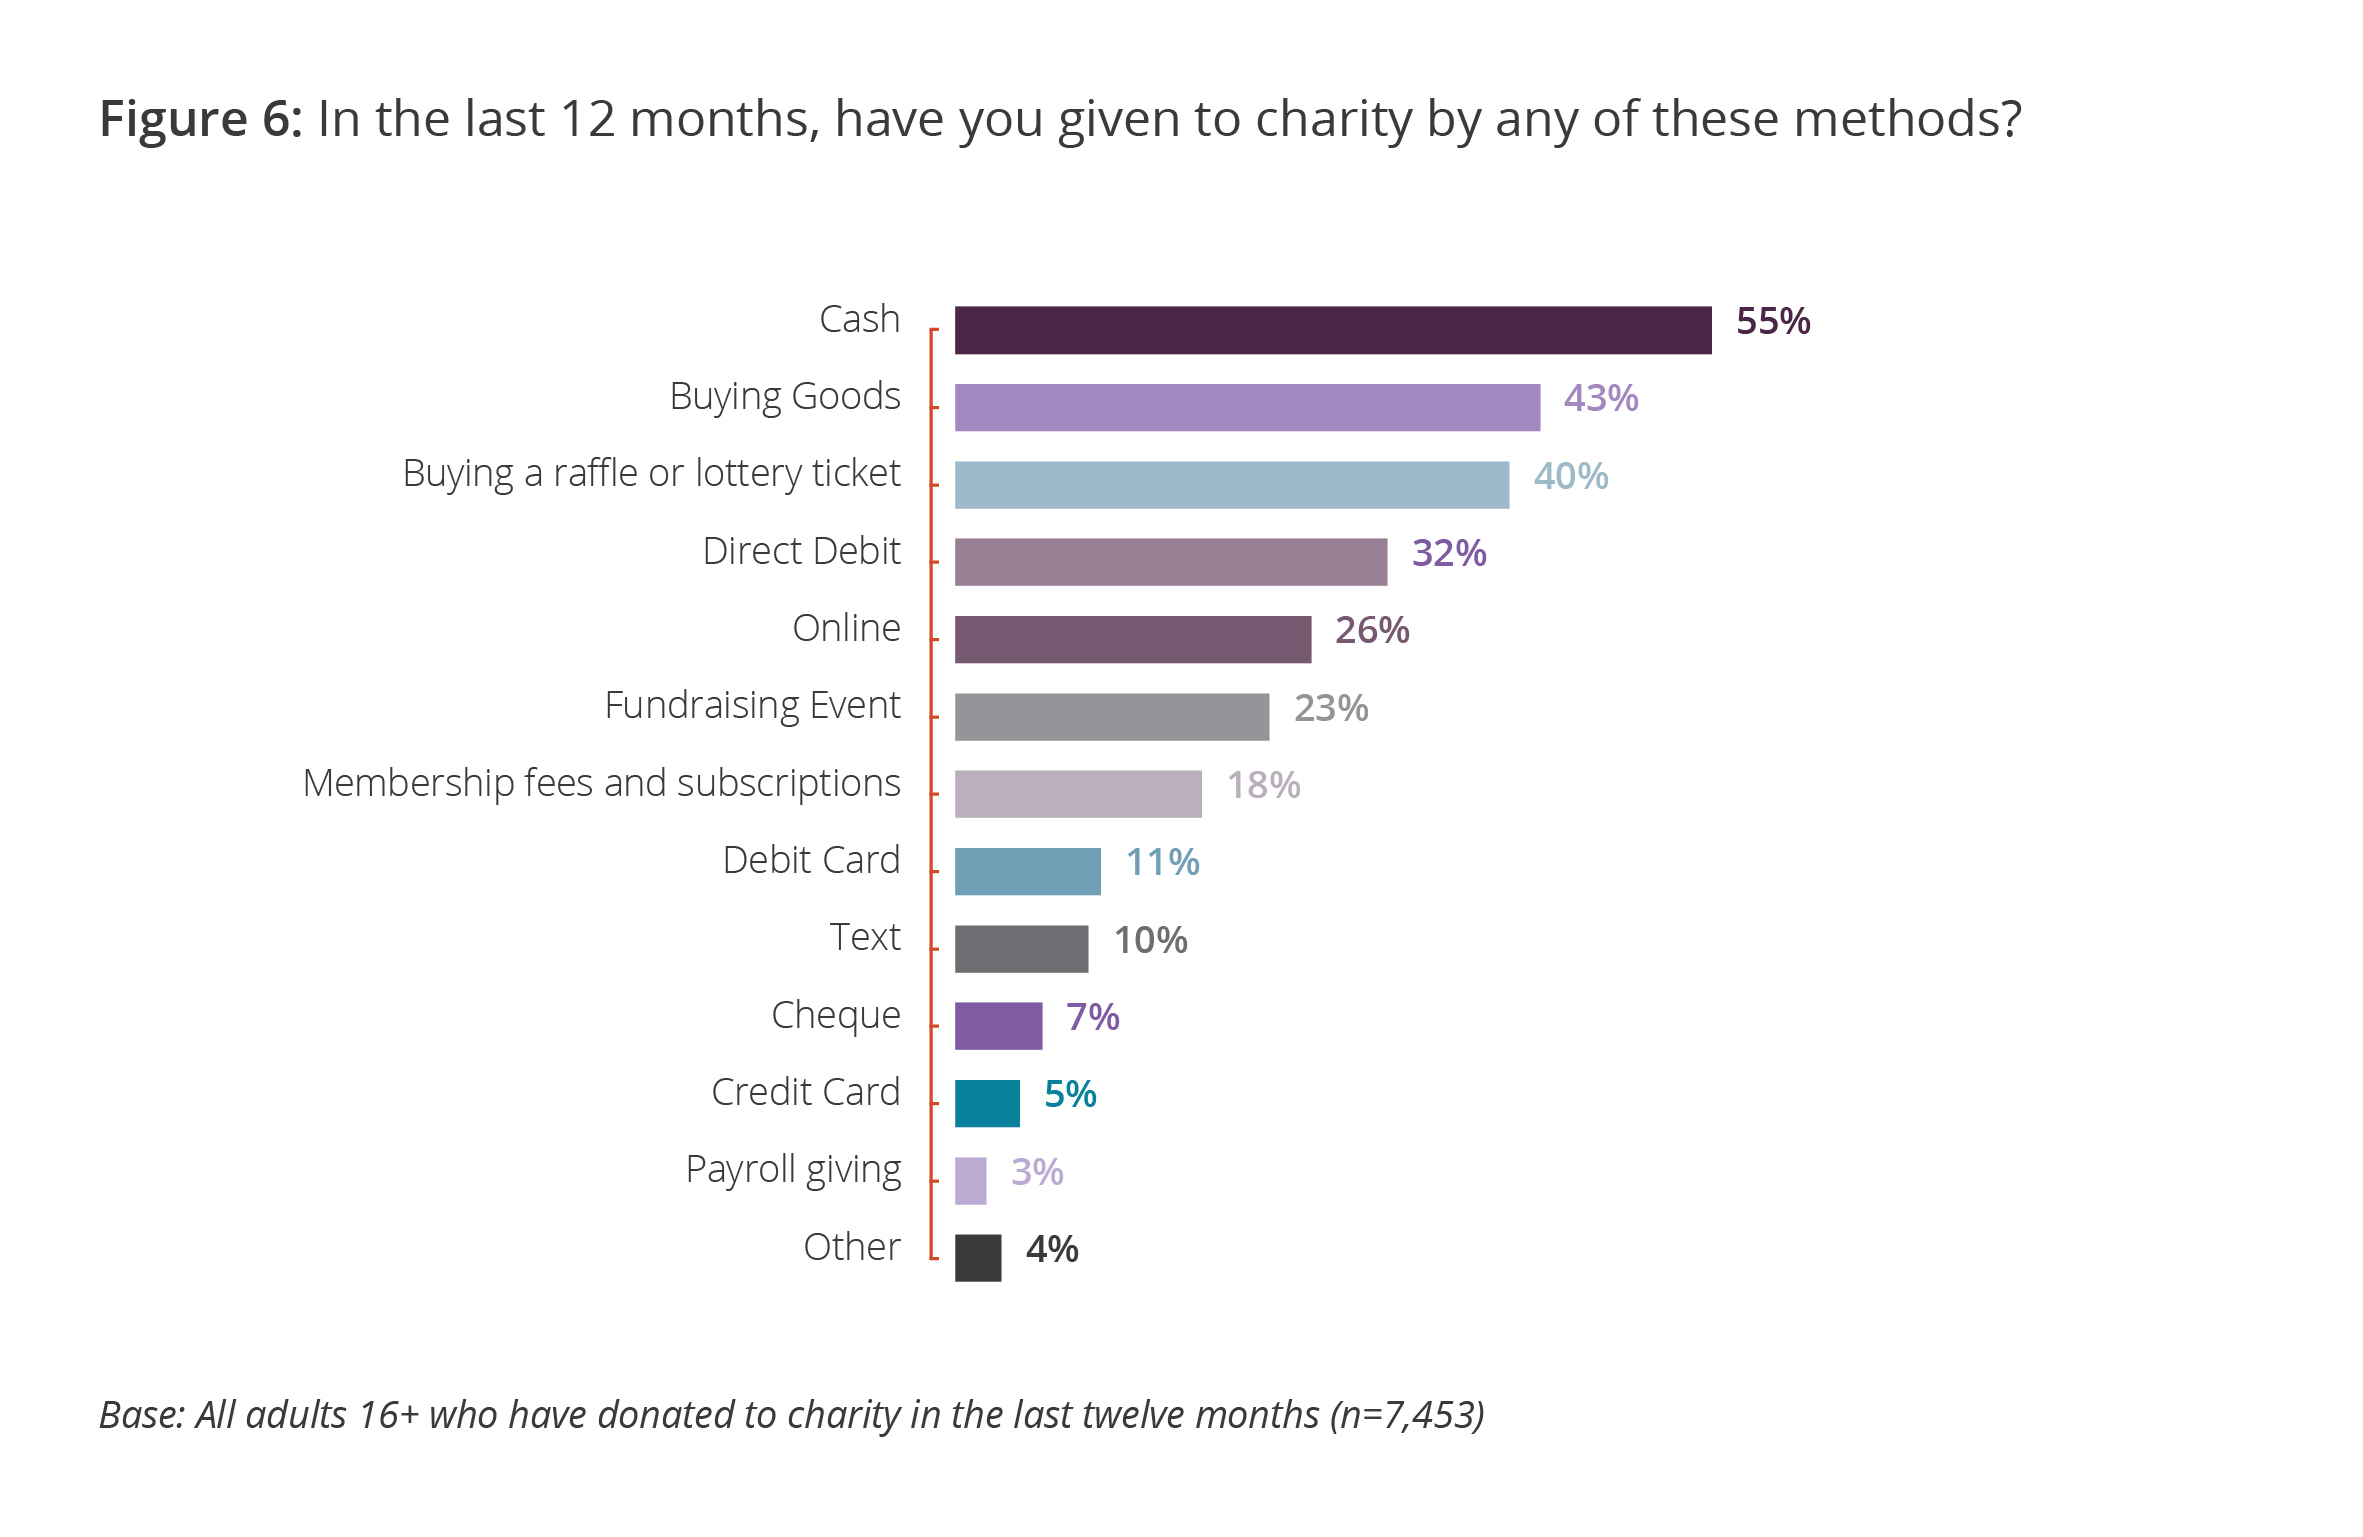 In the last 12 months, have you given to charity by any of these methods?